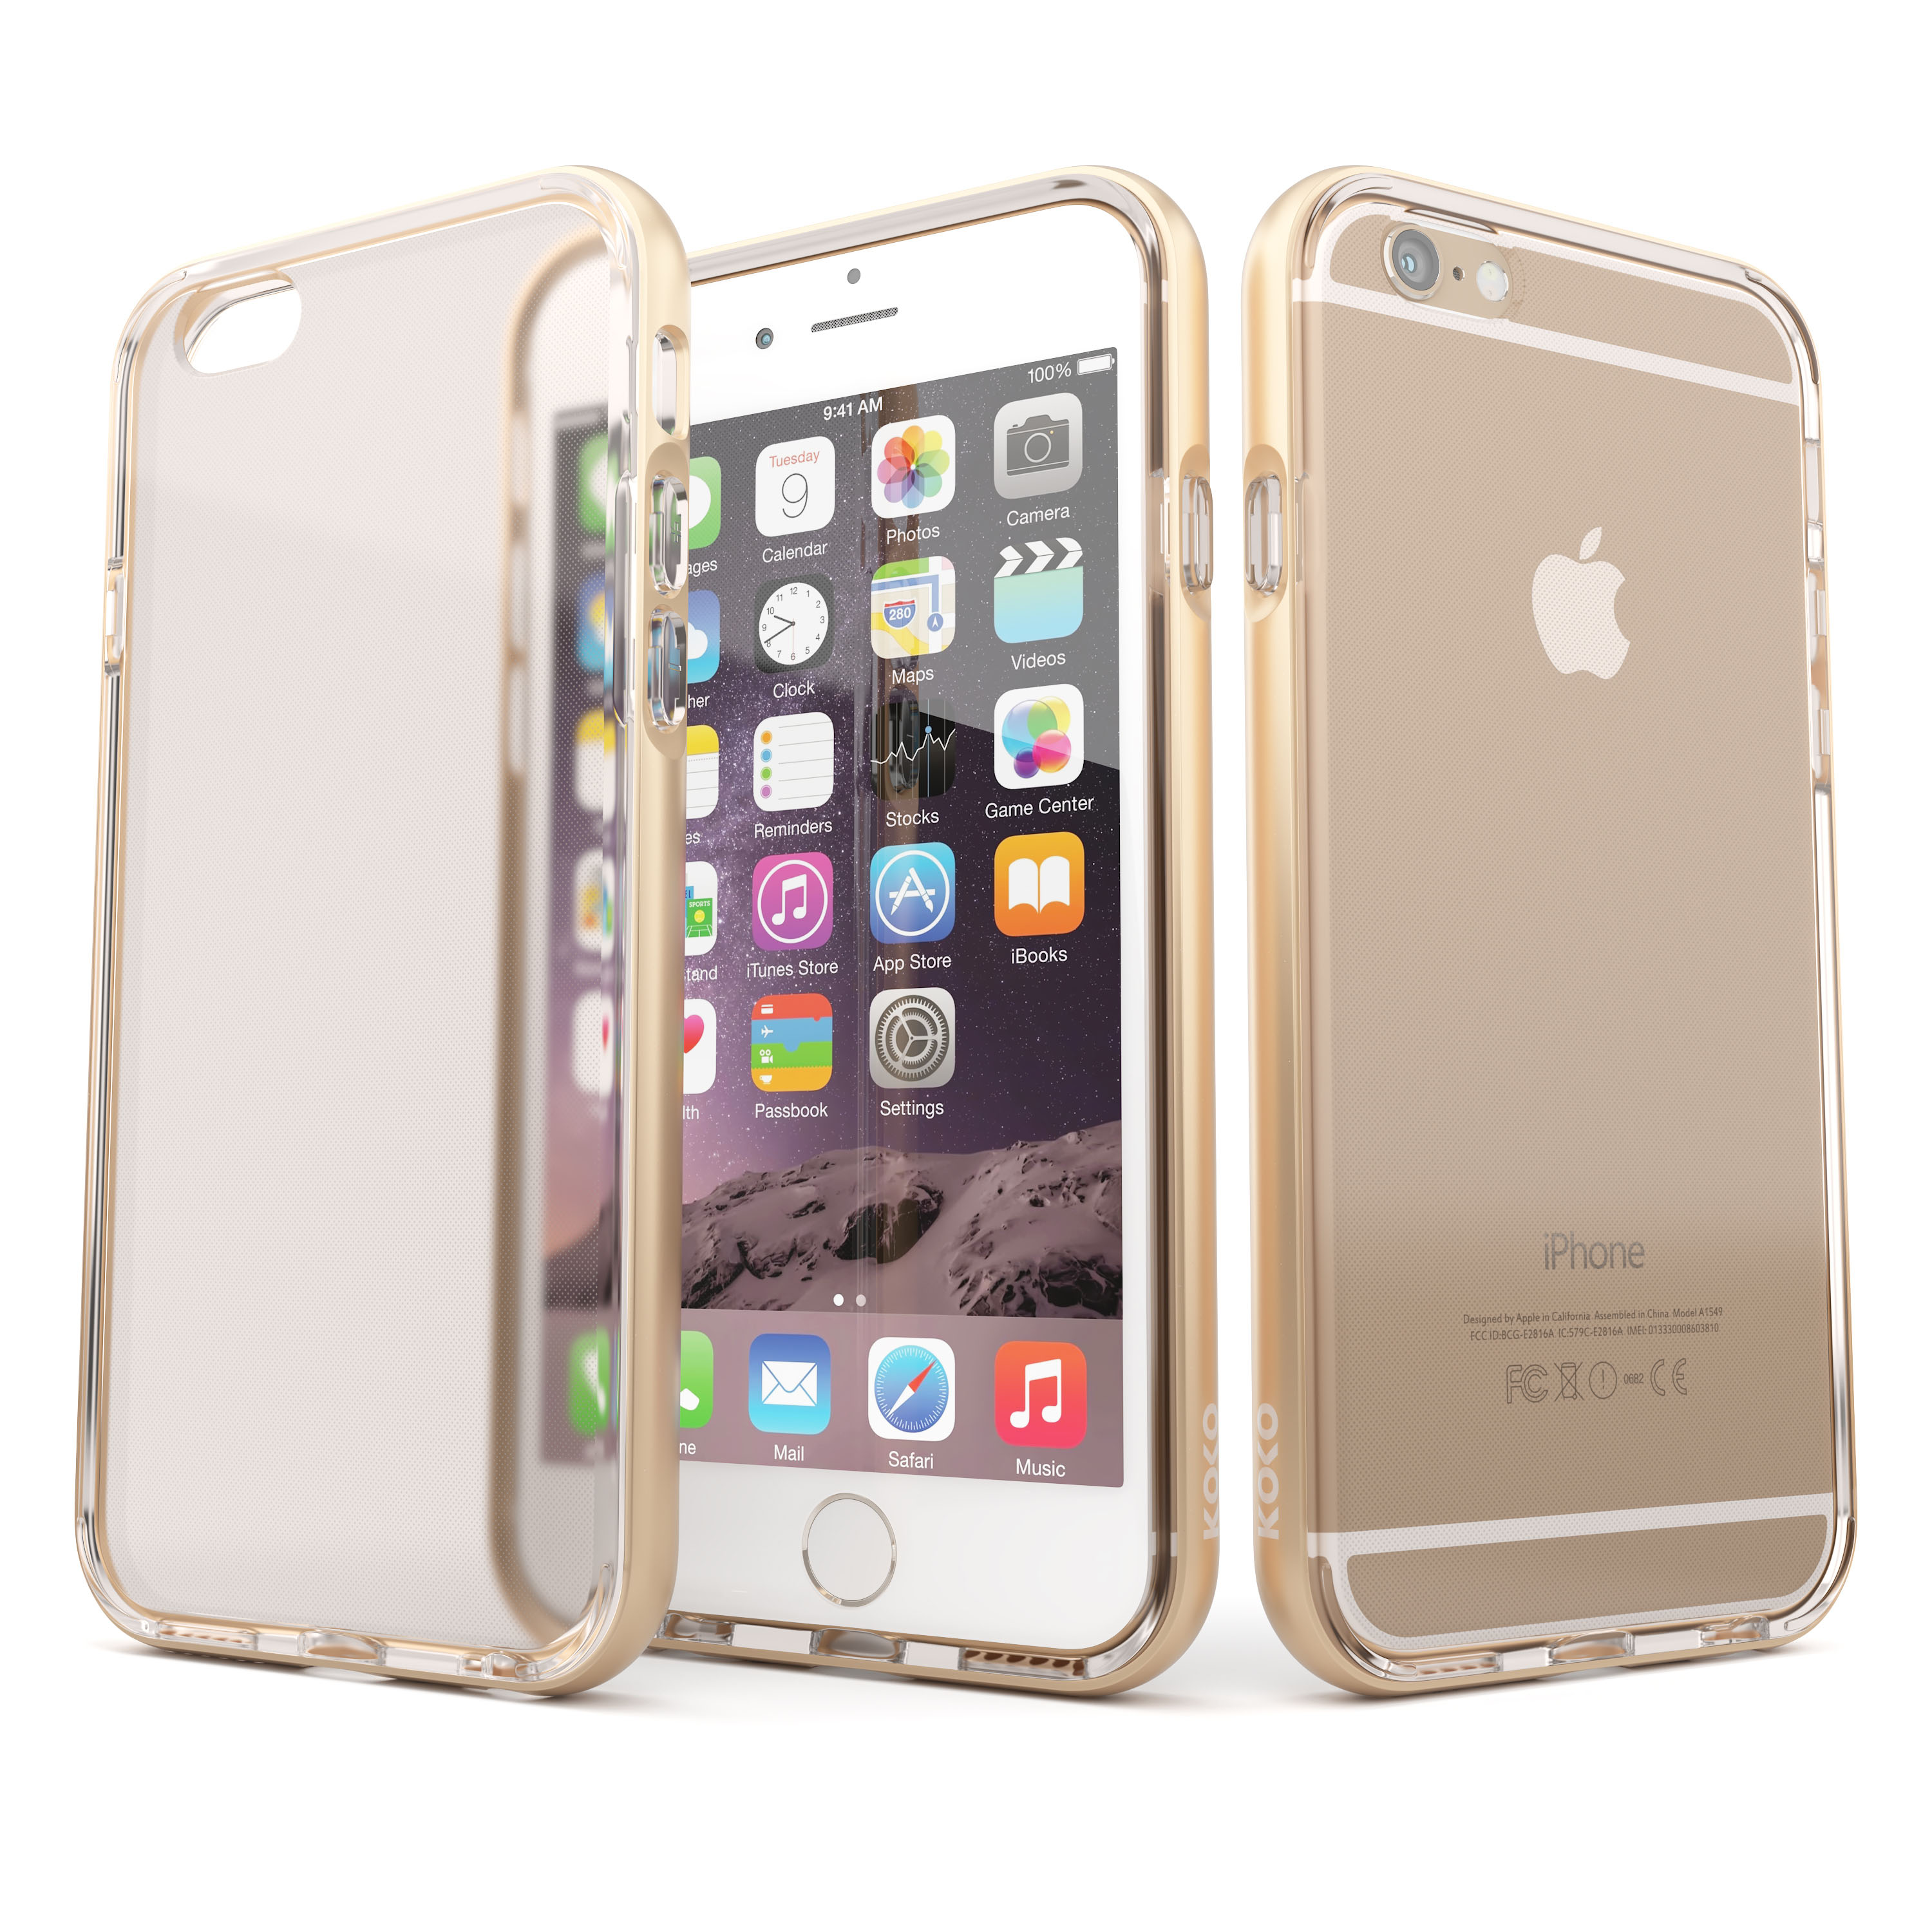 Gold iPhone case 3D product rendering